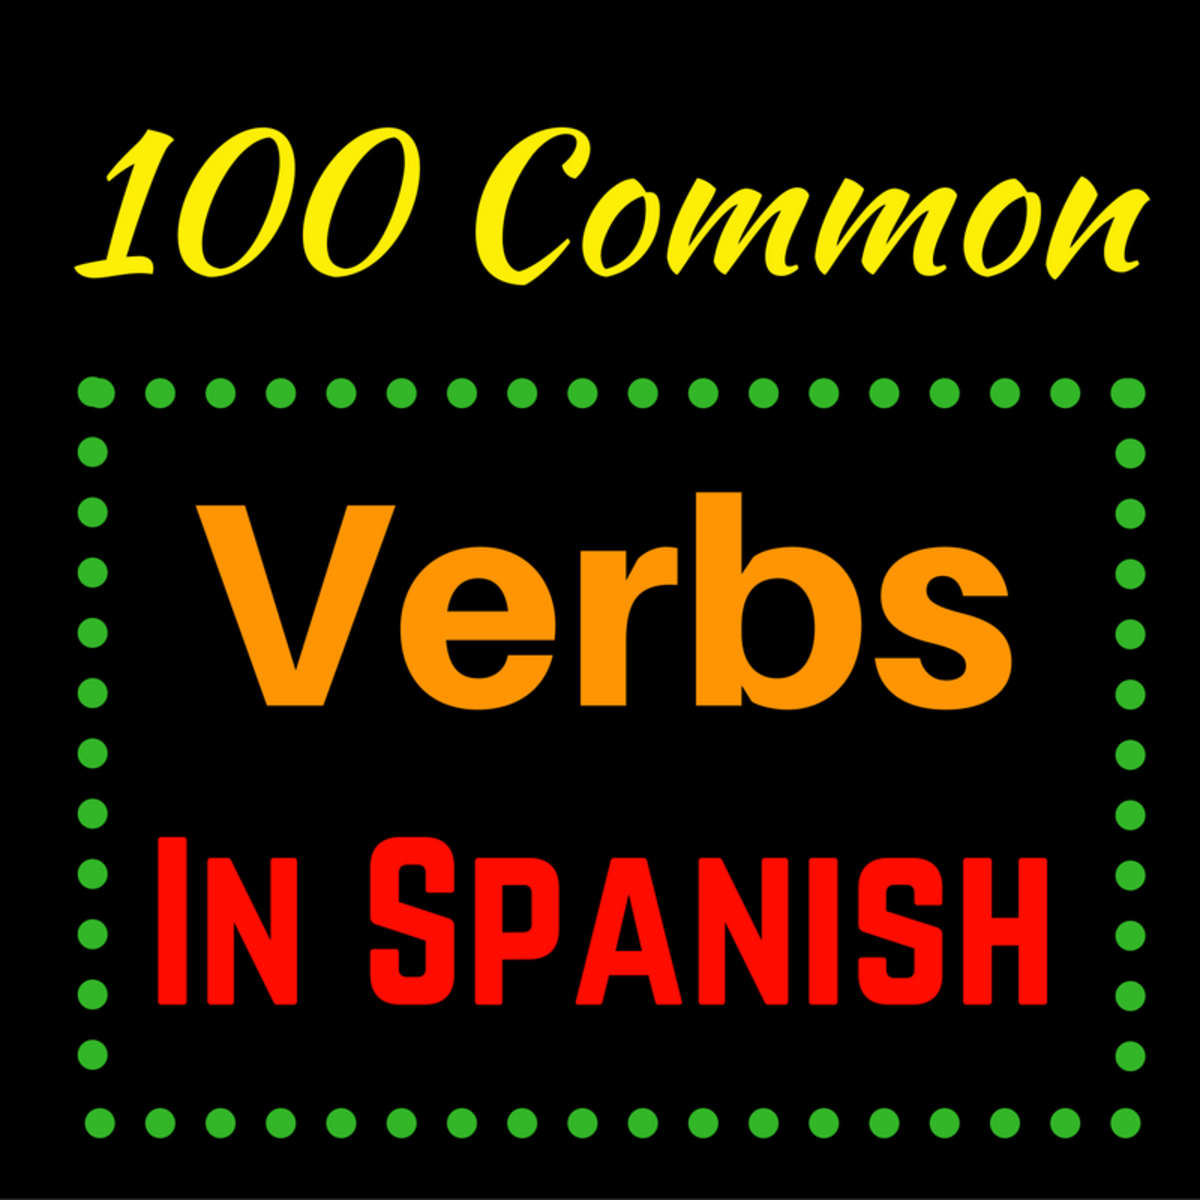 Learn Spanish: 100 Most Common Verbs and Expressions | Owlcation